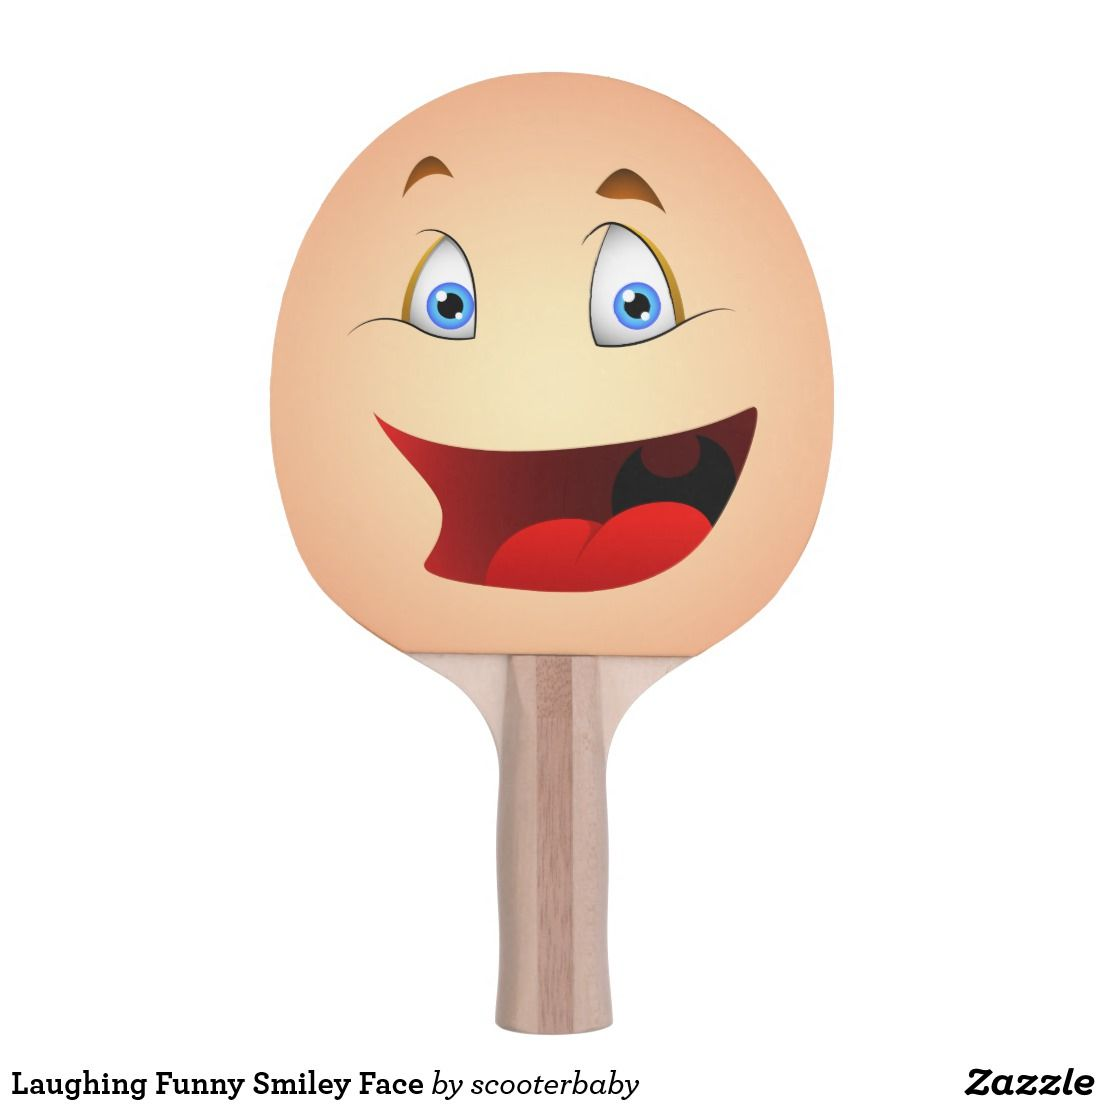 Laughing Funny Smiley Face Ping Pong Paddle Funny Smiley Ping Pong Paddles Table Tennis